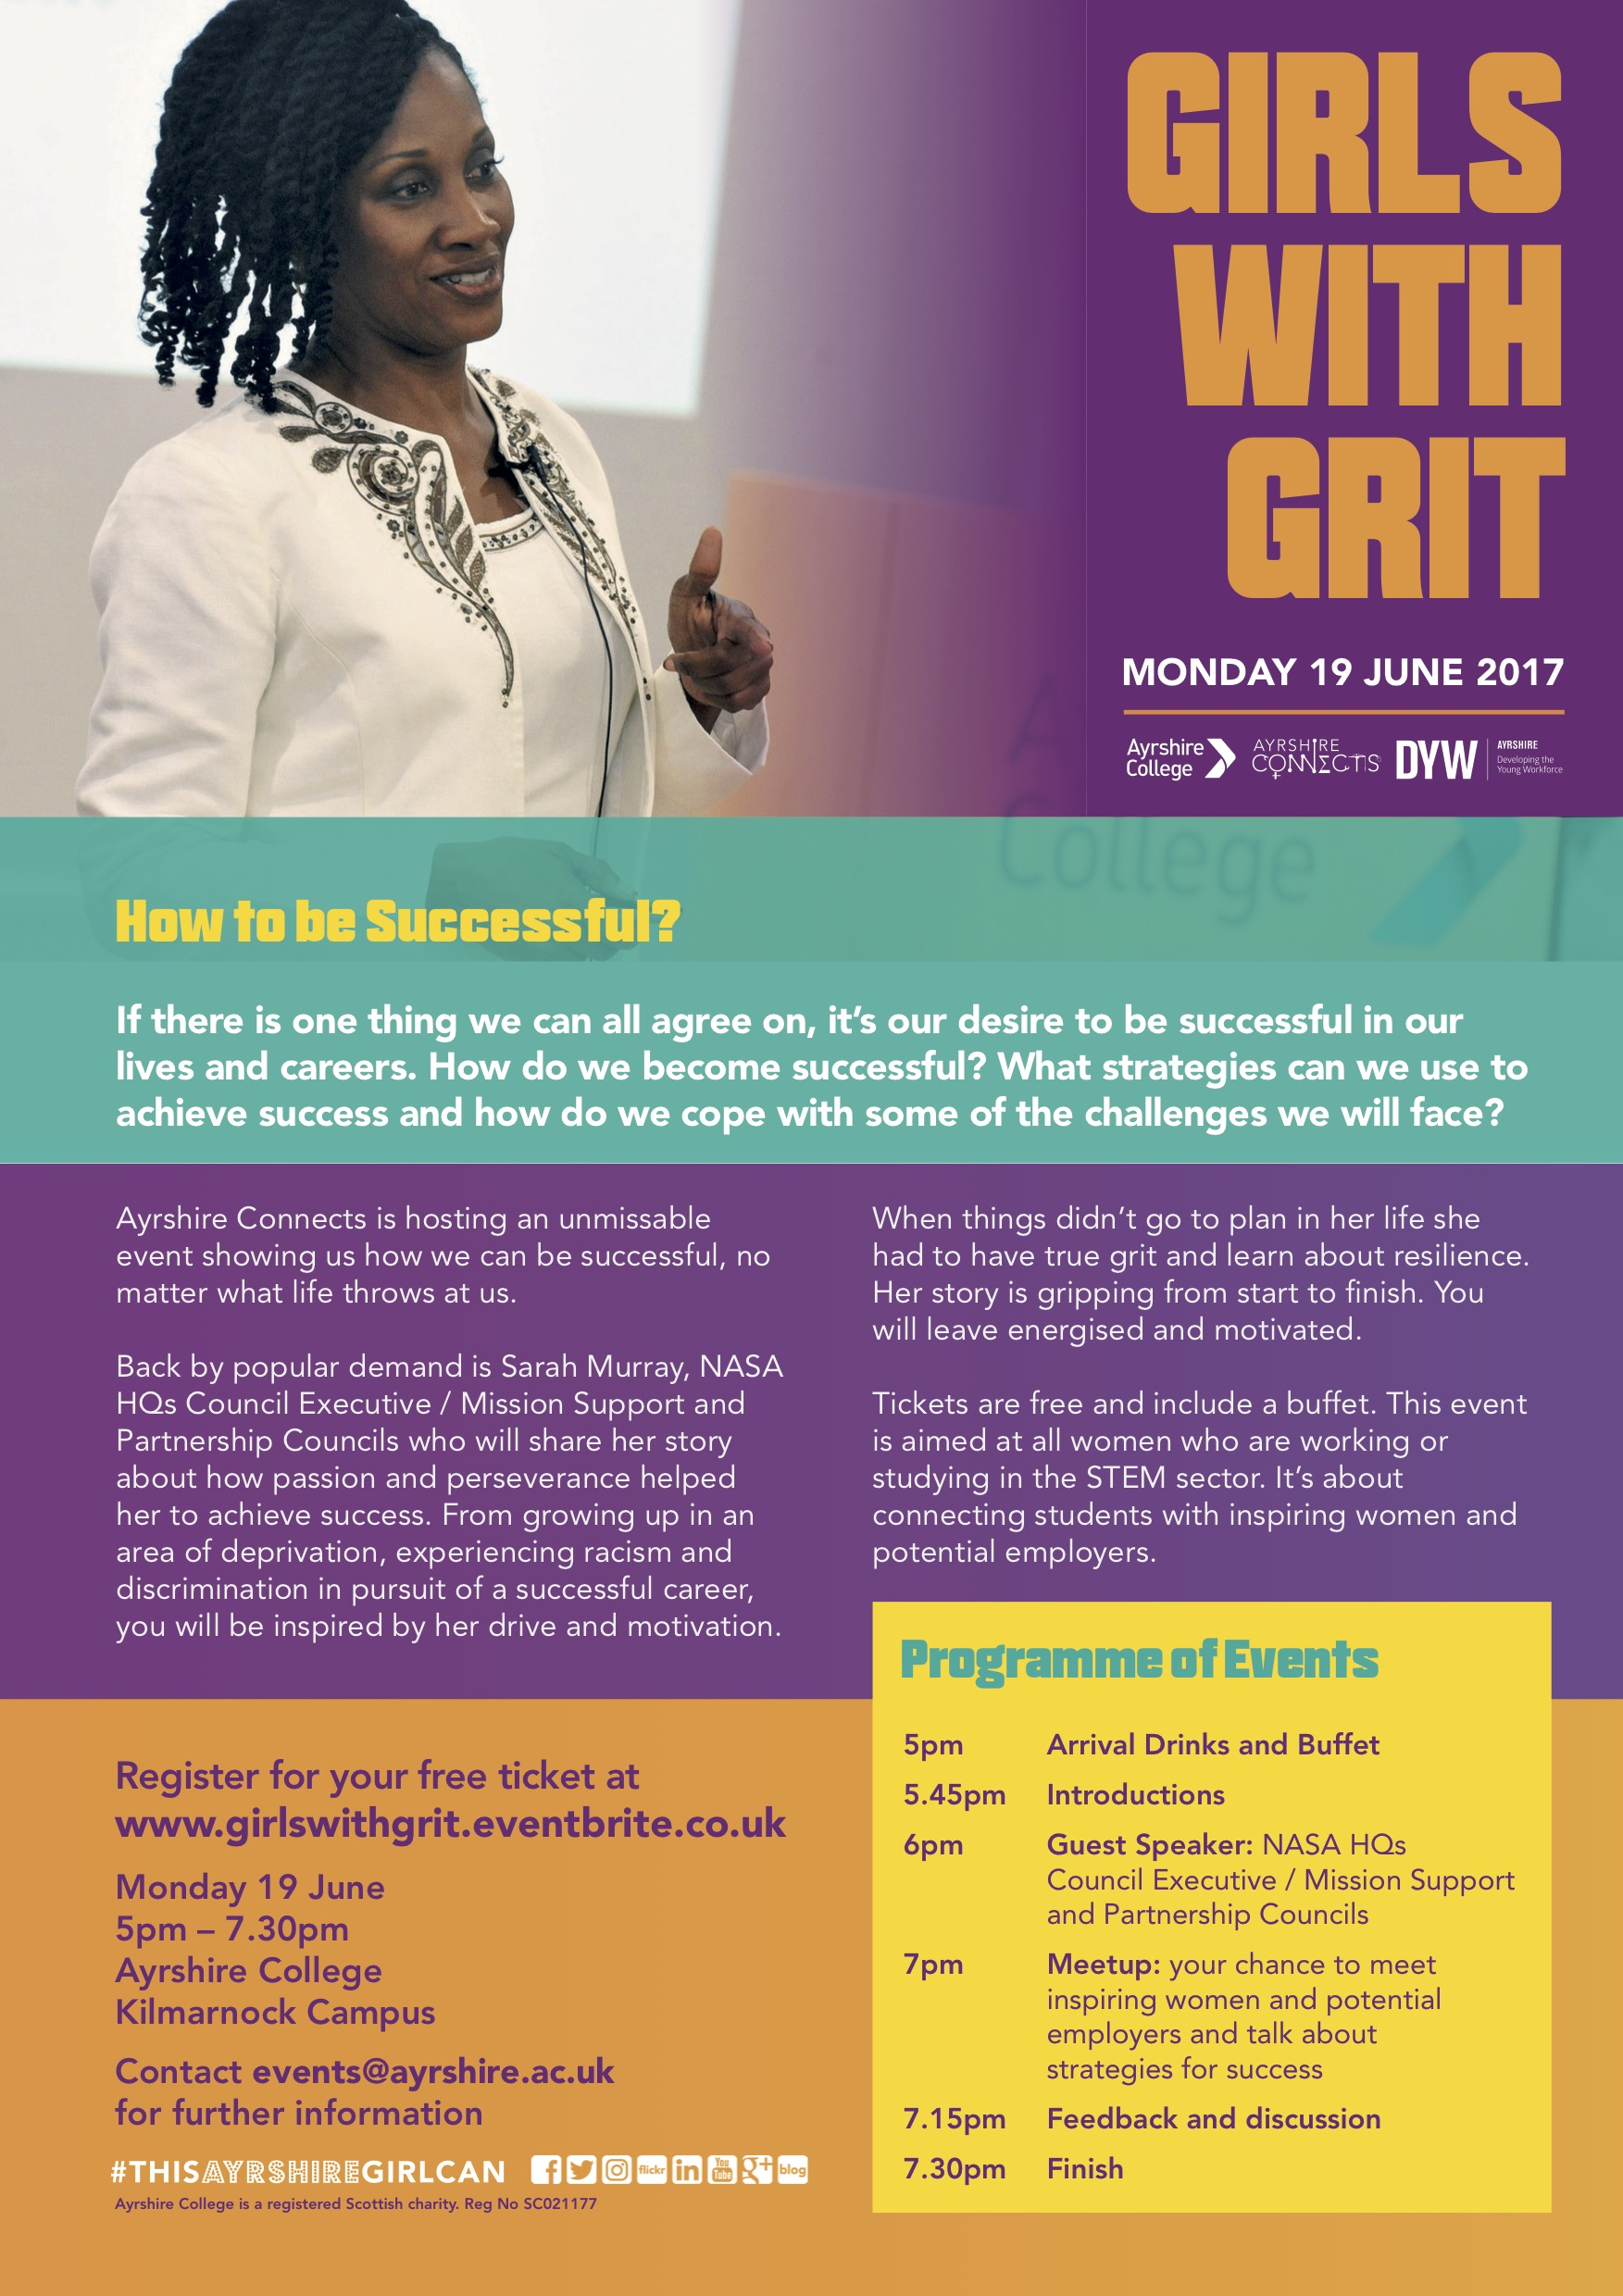 girls with grit event poster information